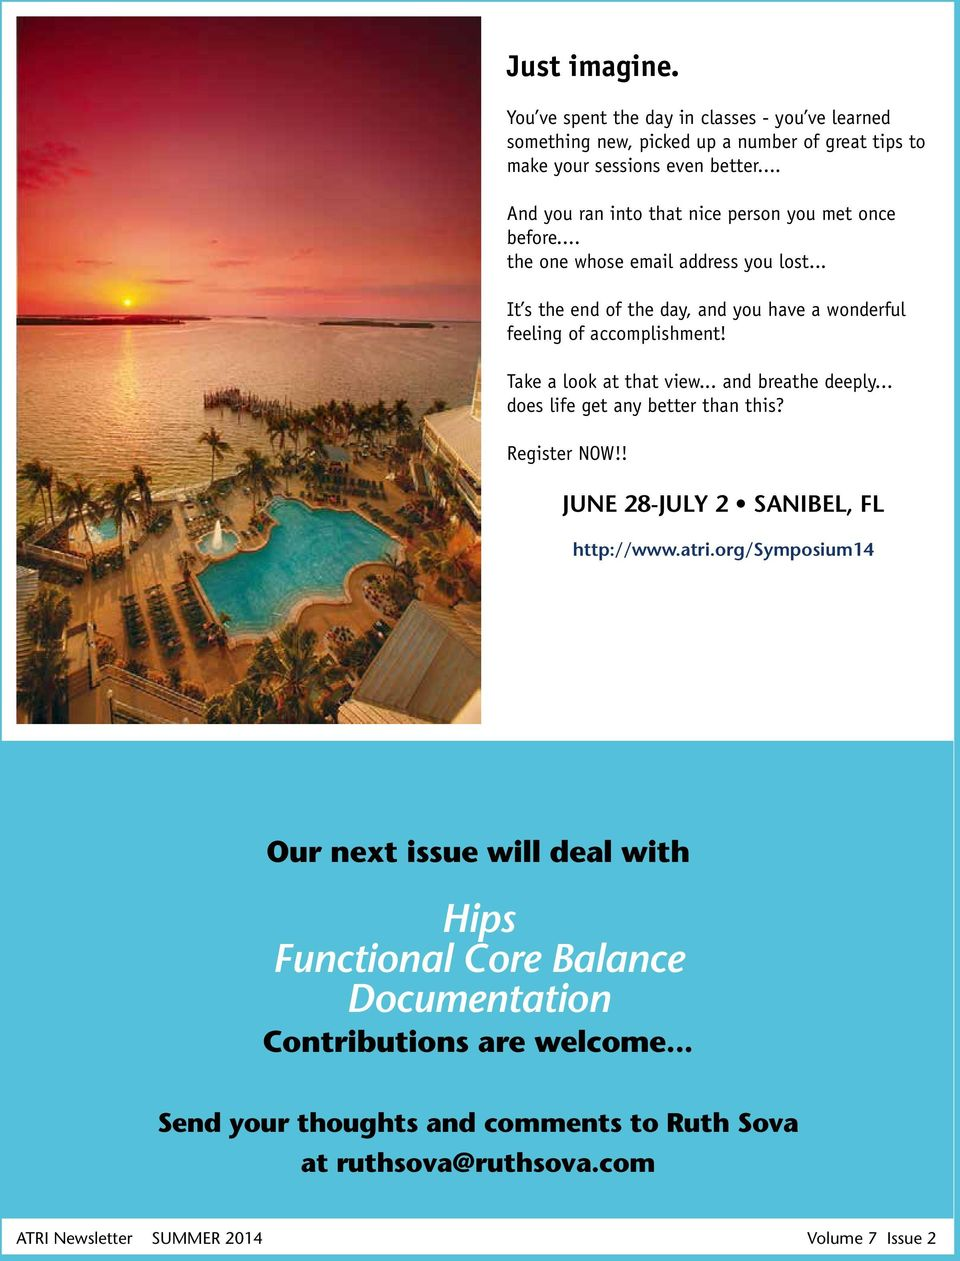 Take a look at that view... and breathe deeply... does life get any better than this? Register NOW!! June 28-July 2 Sanibel, FL http://www.atri.